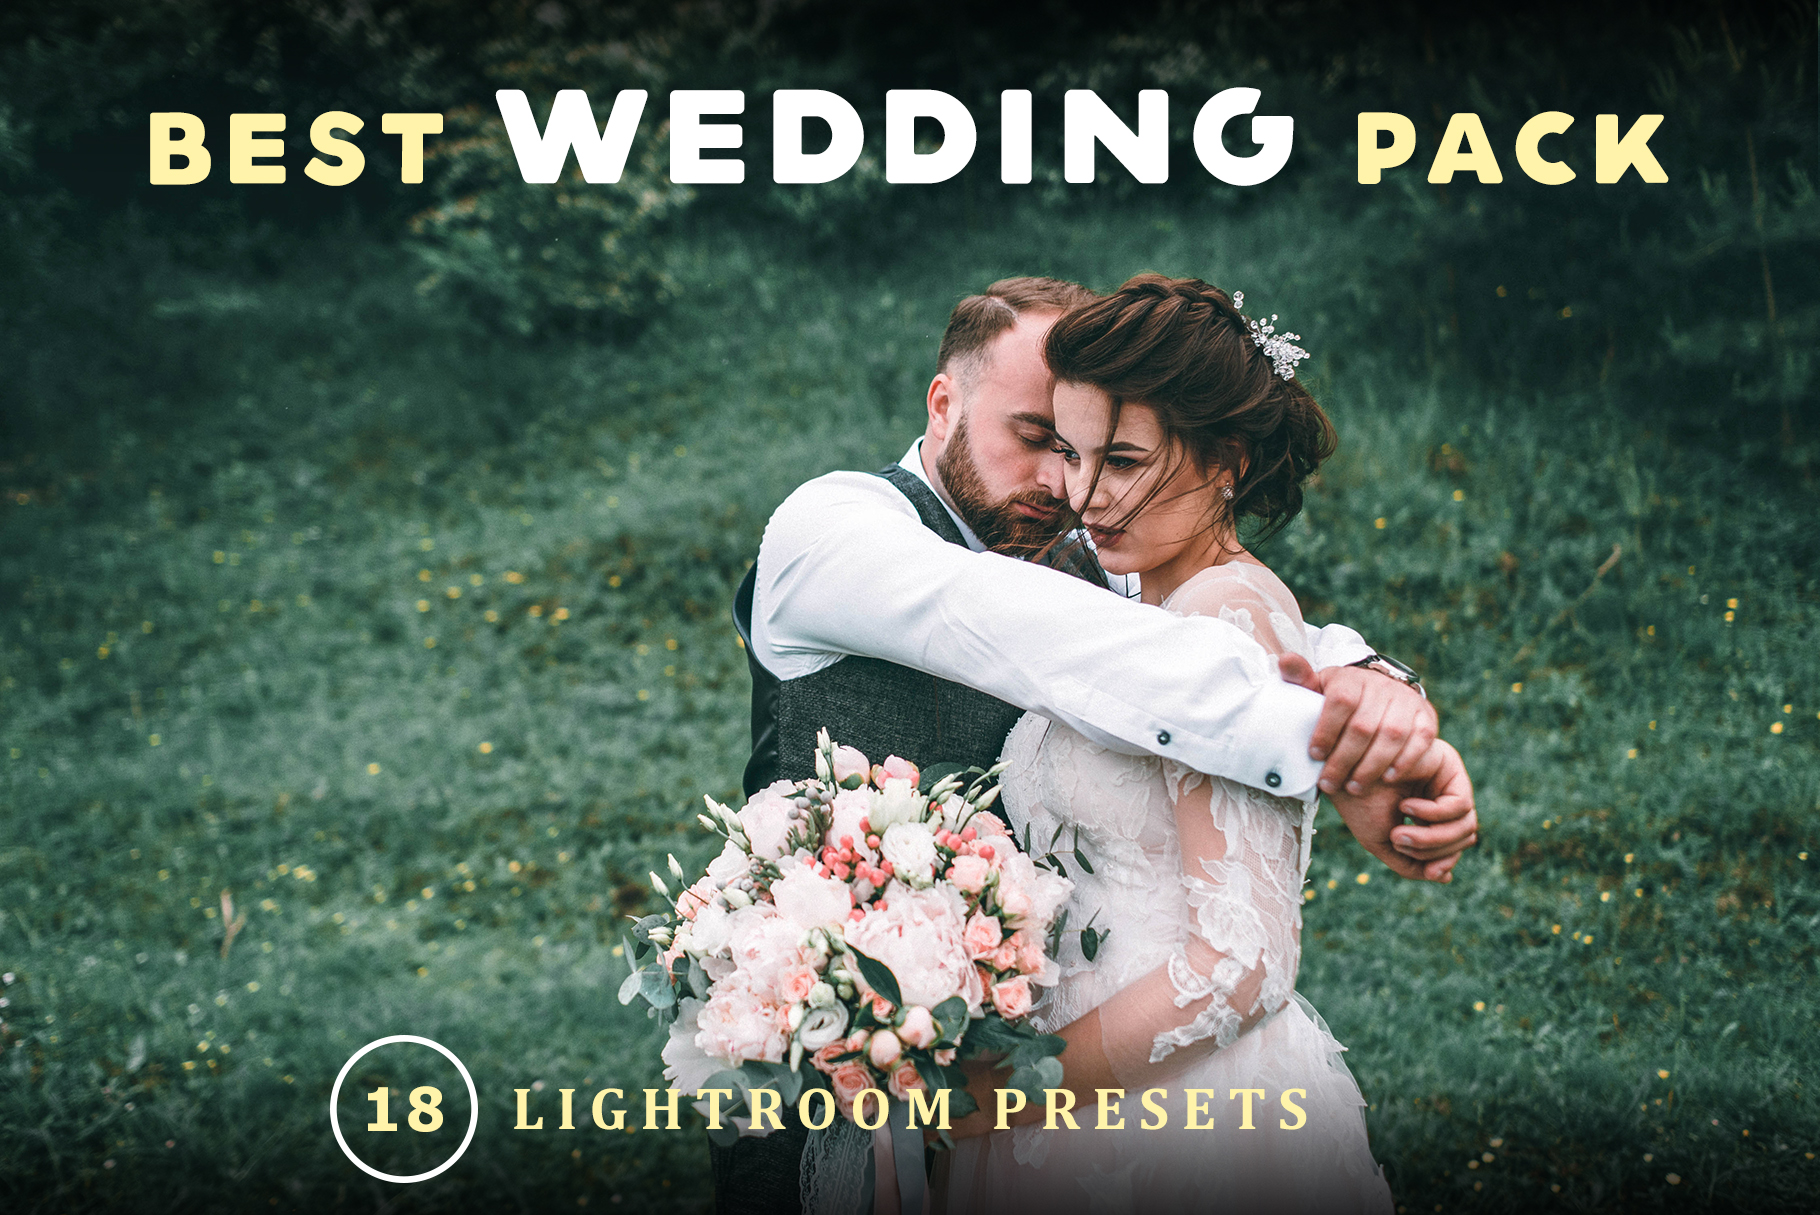 Wedding Pack Lightroom Presets example image 1